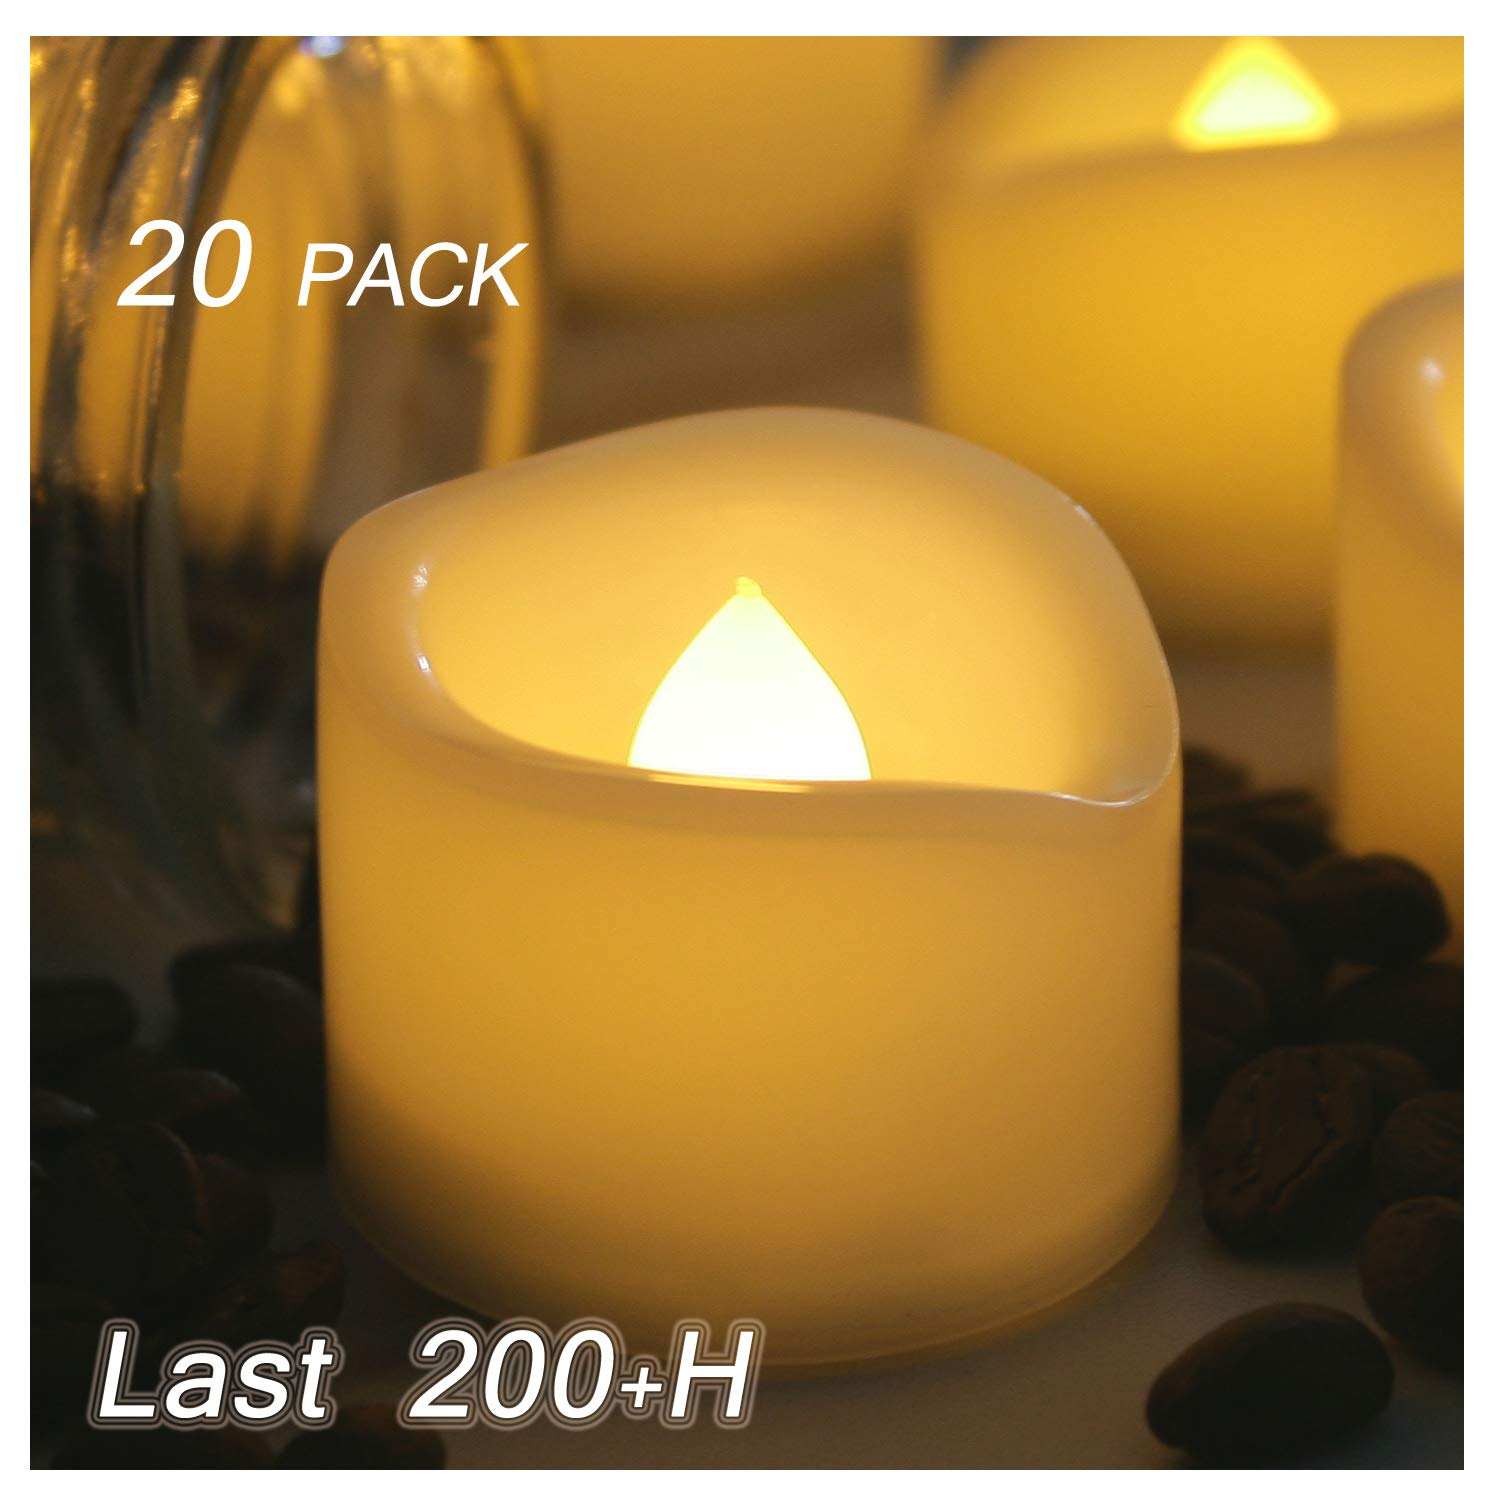 20 Pack Small Battery Operated Flameless LED Votive Candles Realistic Flickering Electric Fake Tea Lights Bulk Set Baptism Party Wedding Decorations Centerpieces Home Decor Long Lasting Batteries Incl